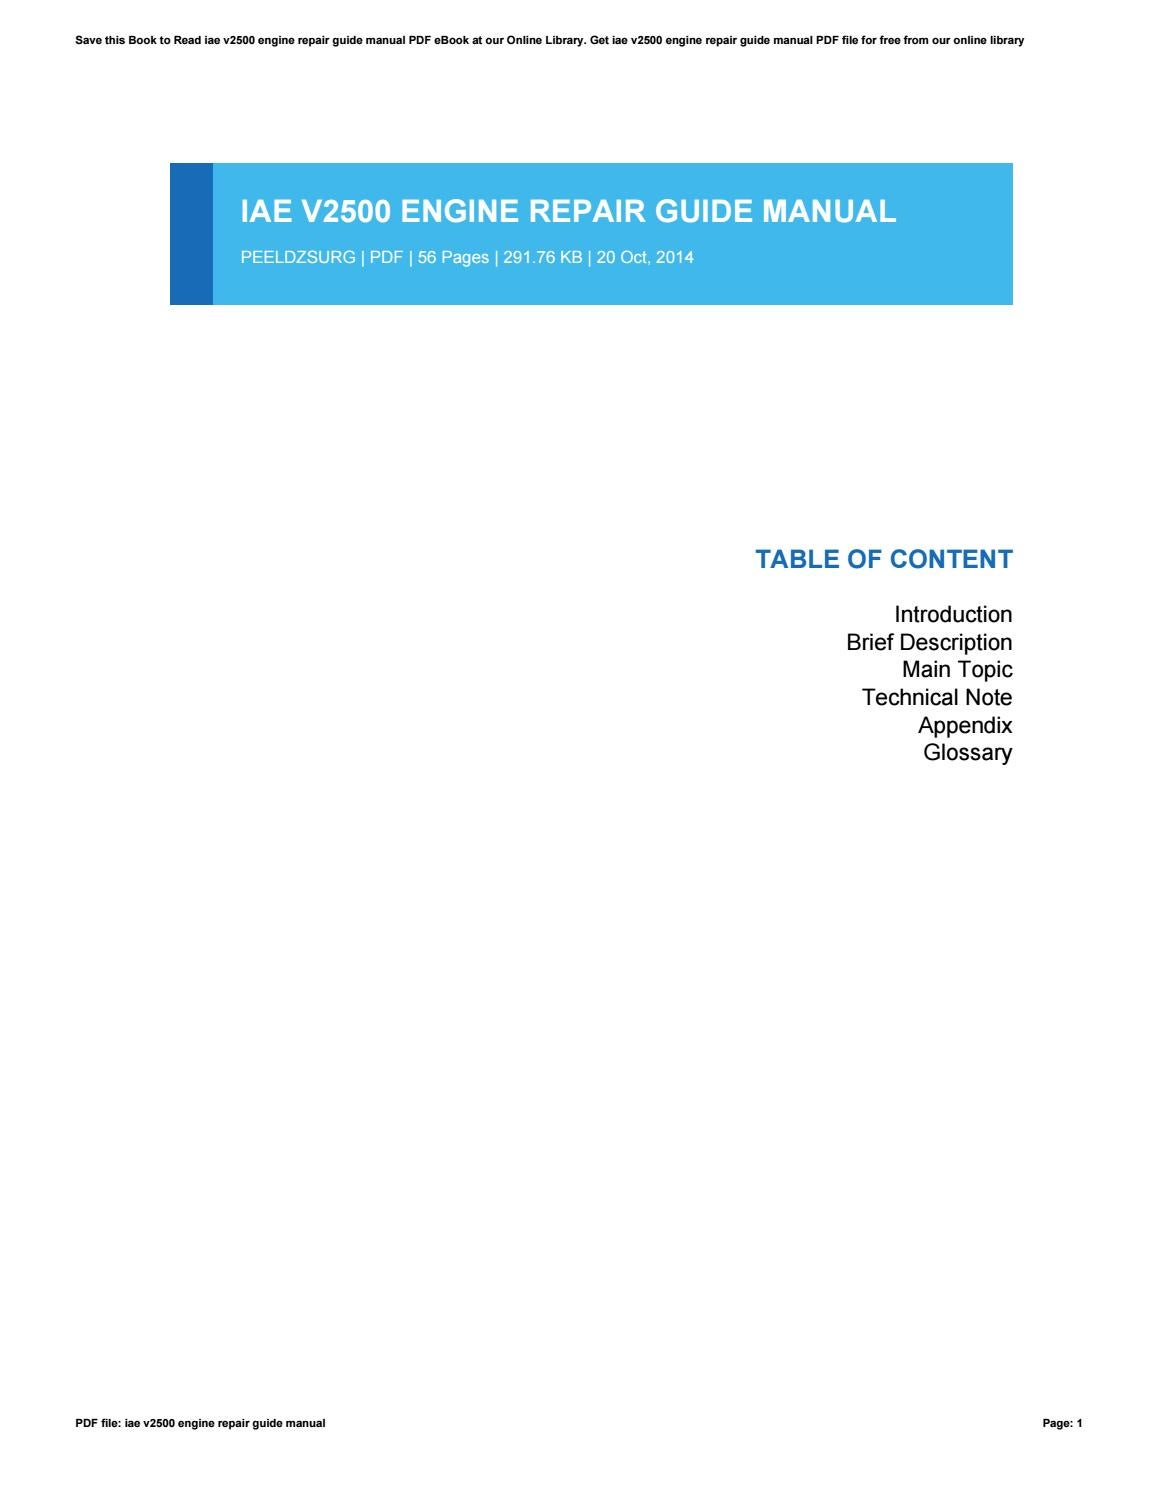 Iae Manual Philips Tv Chassis Gr24 Aa Service Array V2500 Engine Repair Guide By Patriciahubbard3799 Issuu Rh